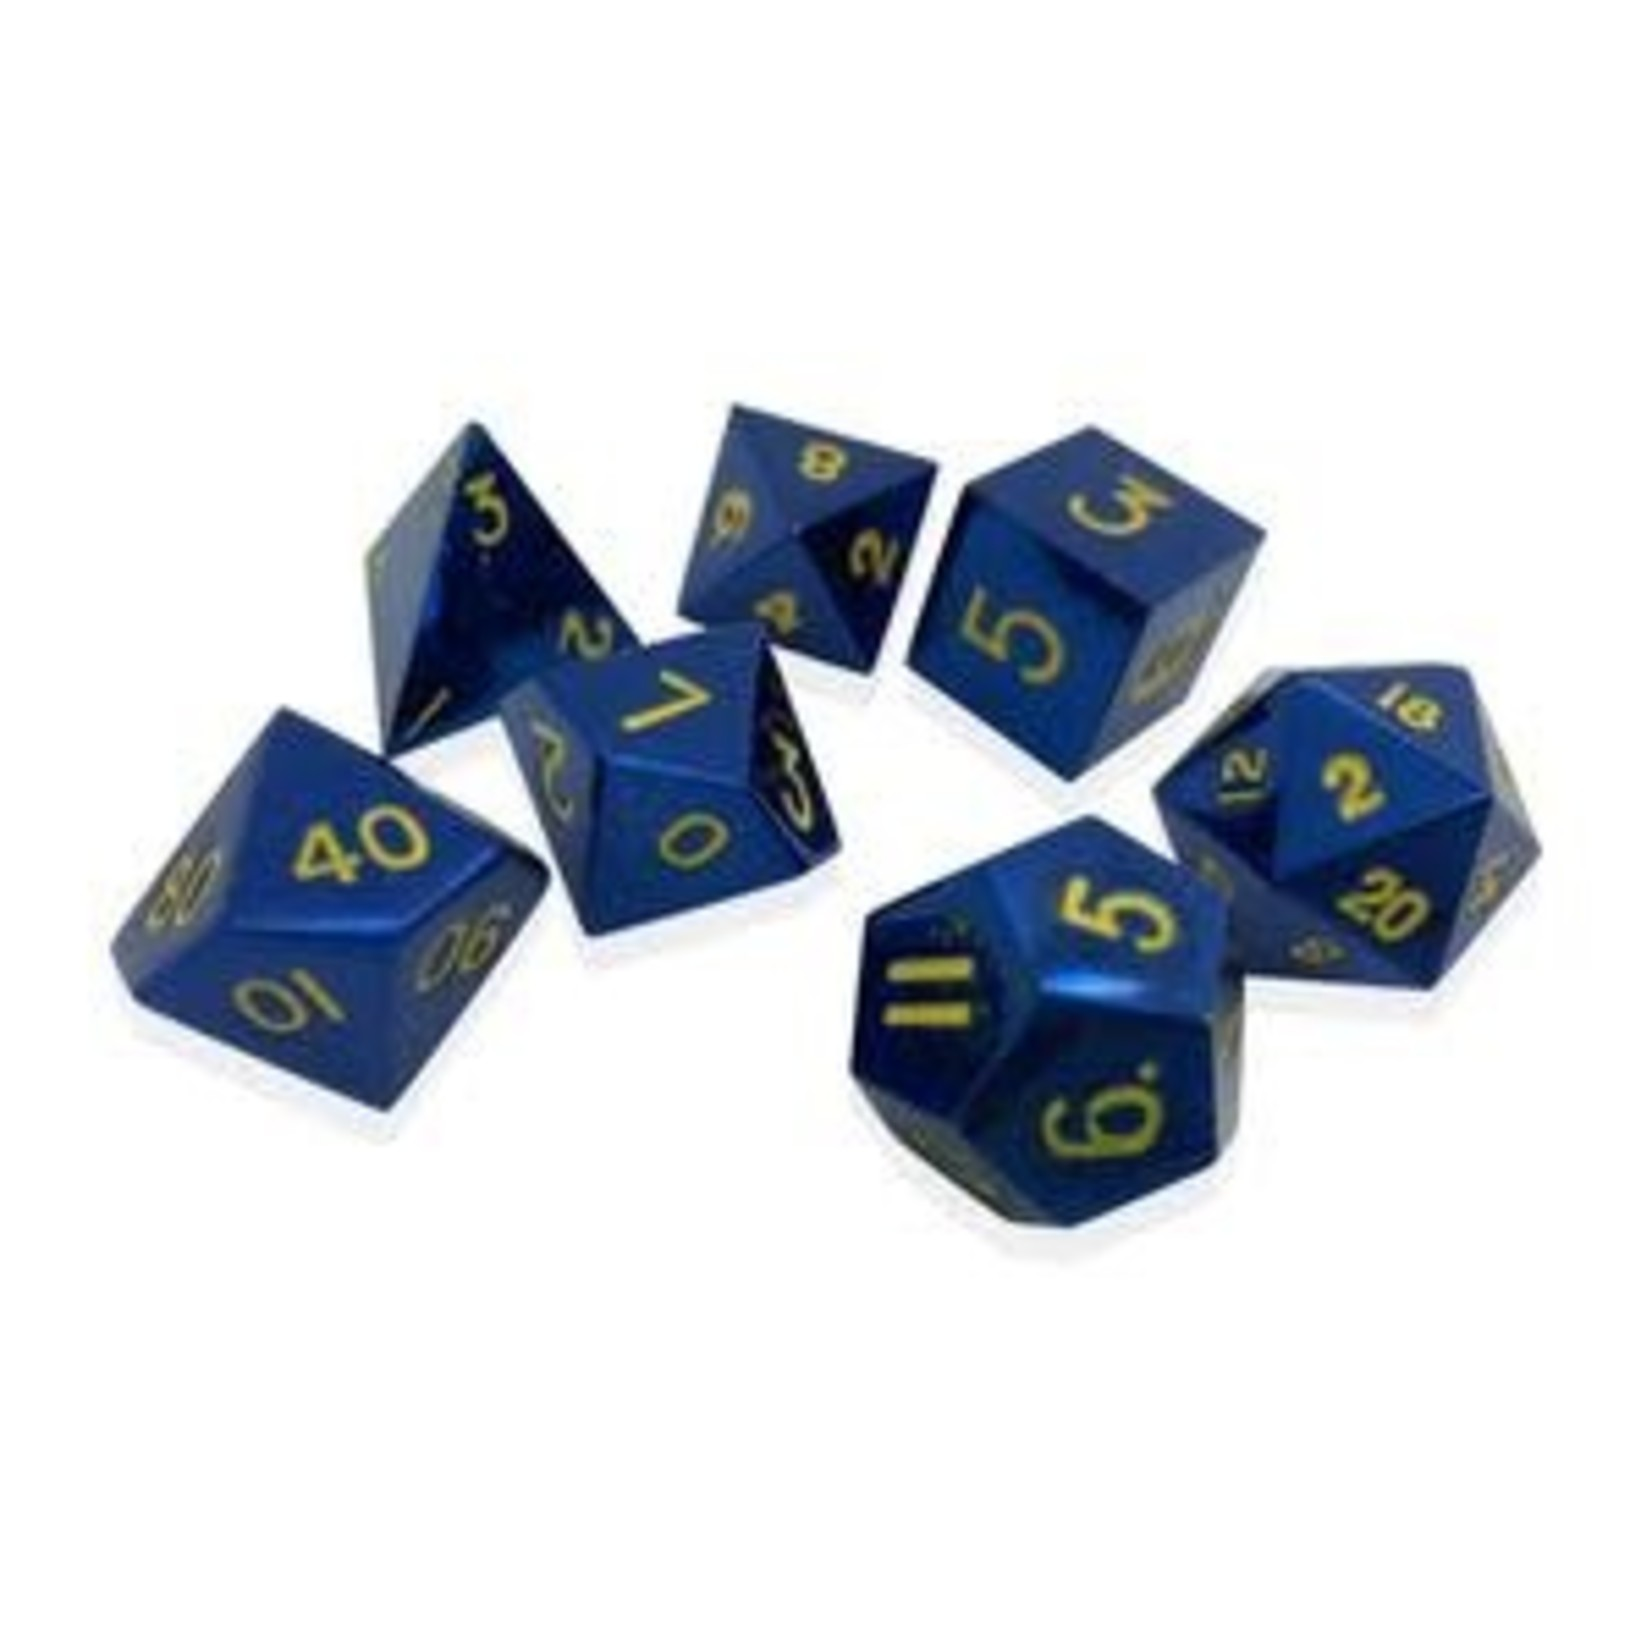 Norse Foundry Norse Foundry Dice: Metal Dice Set - Lightning Bolt